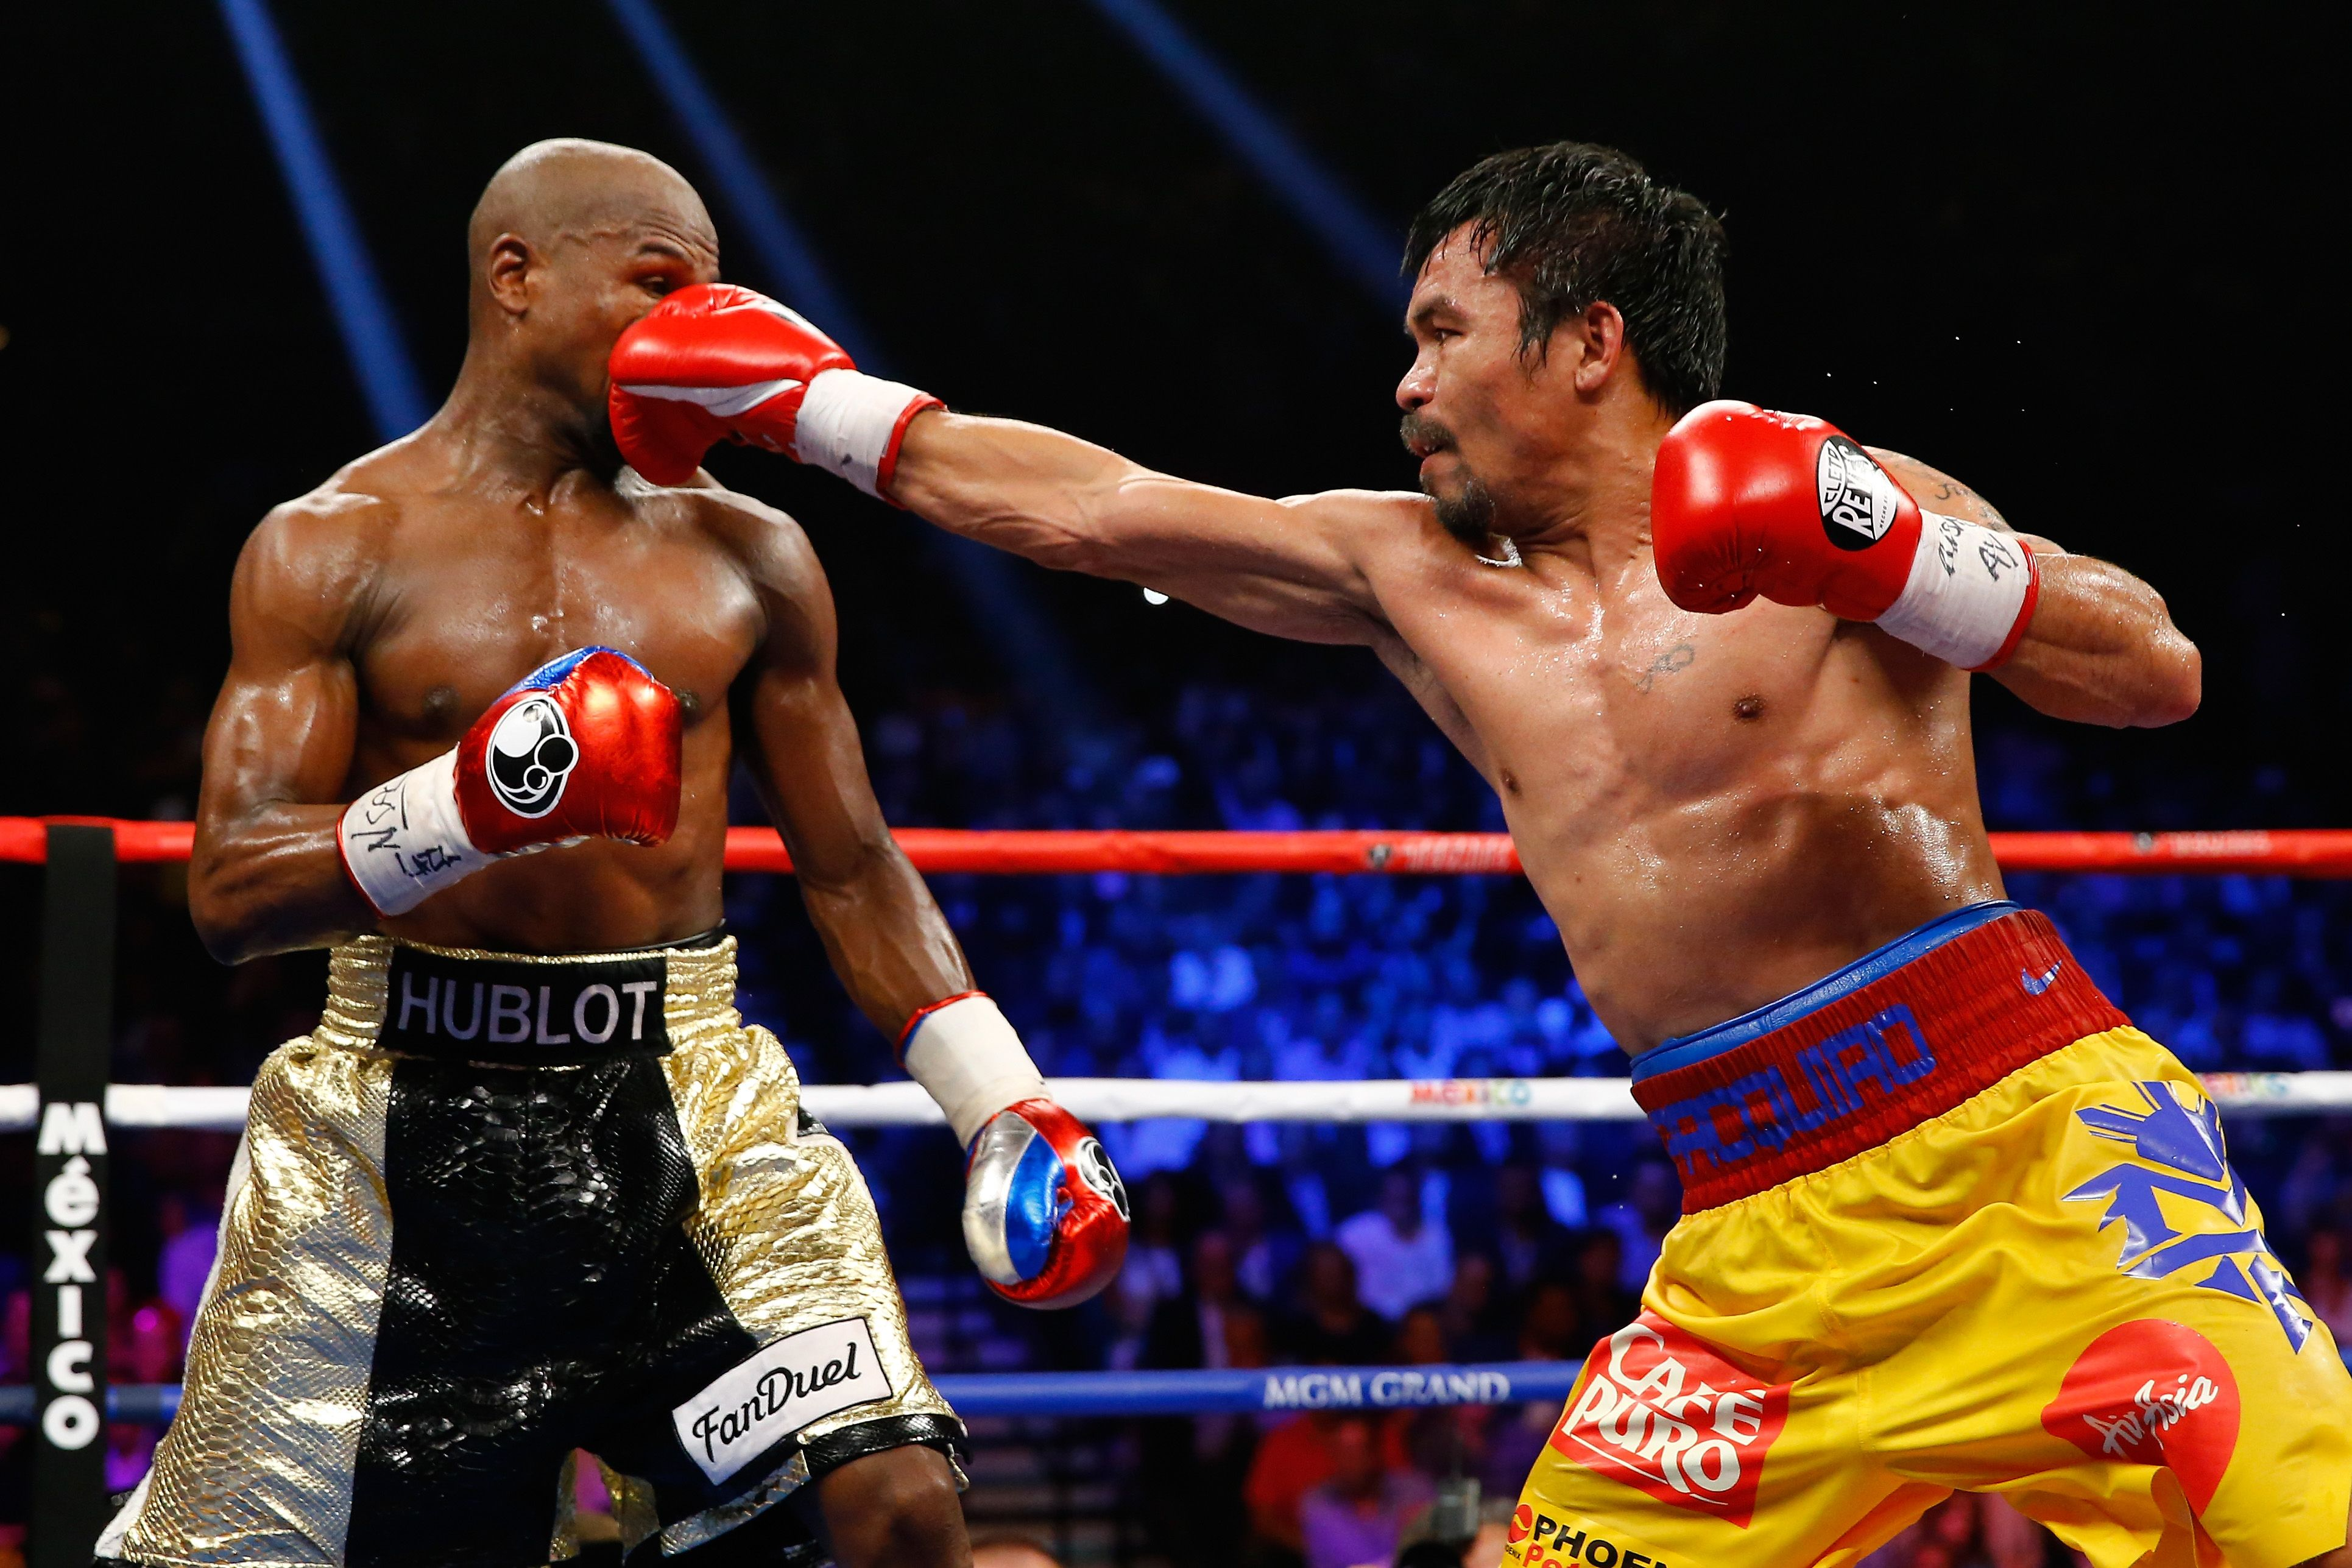 Pin by H Park on Boxing Boxing highlights, Manny